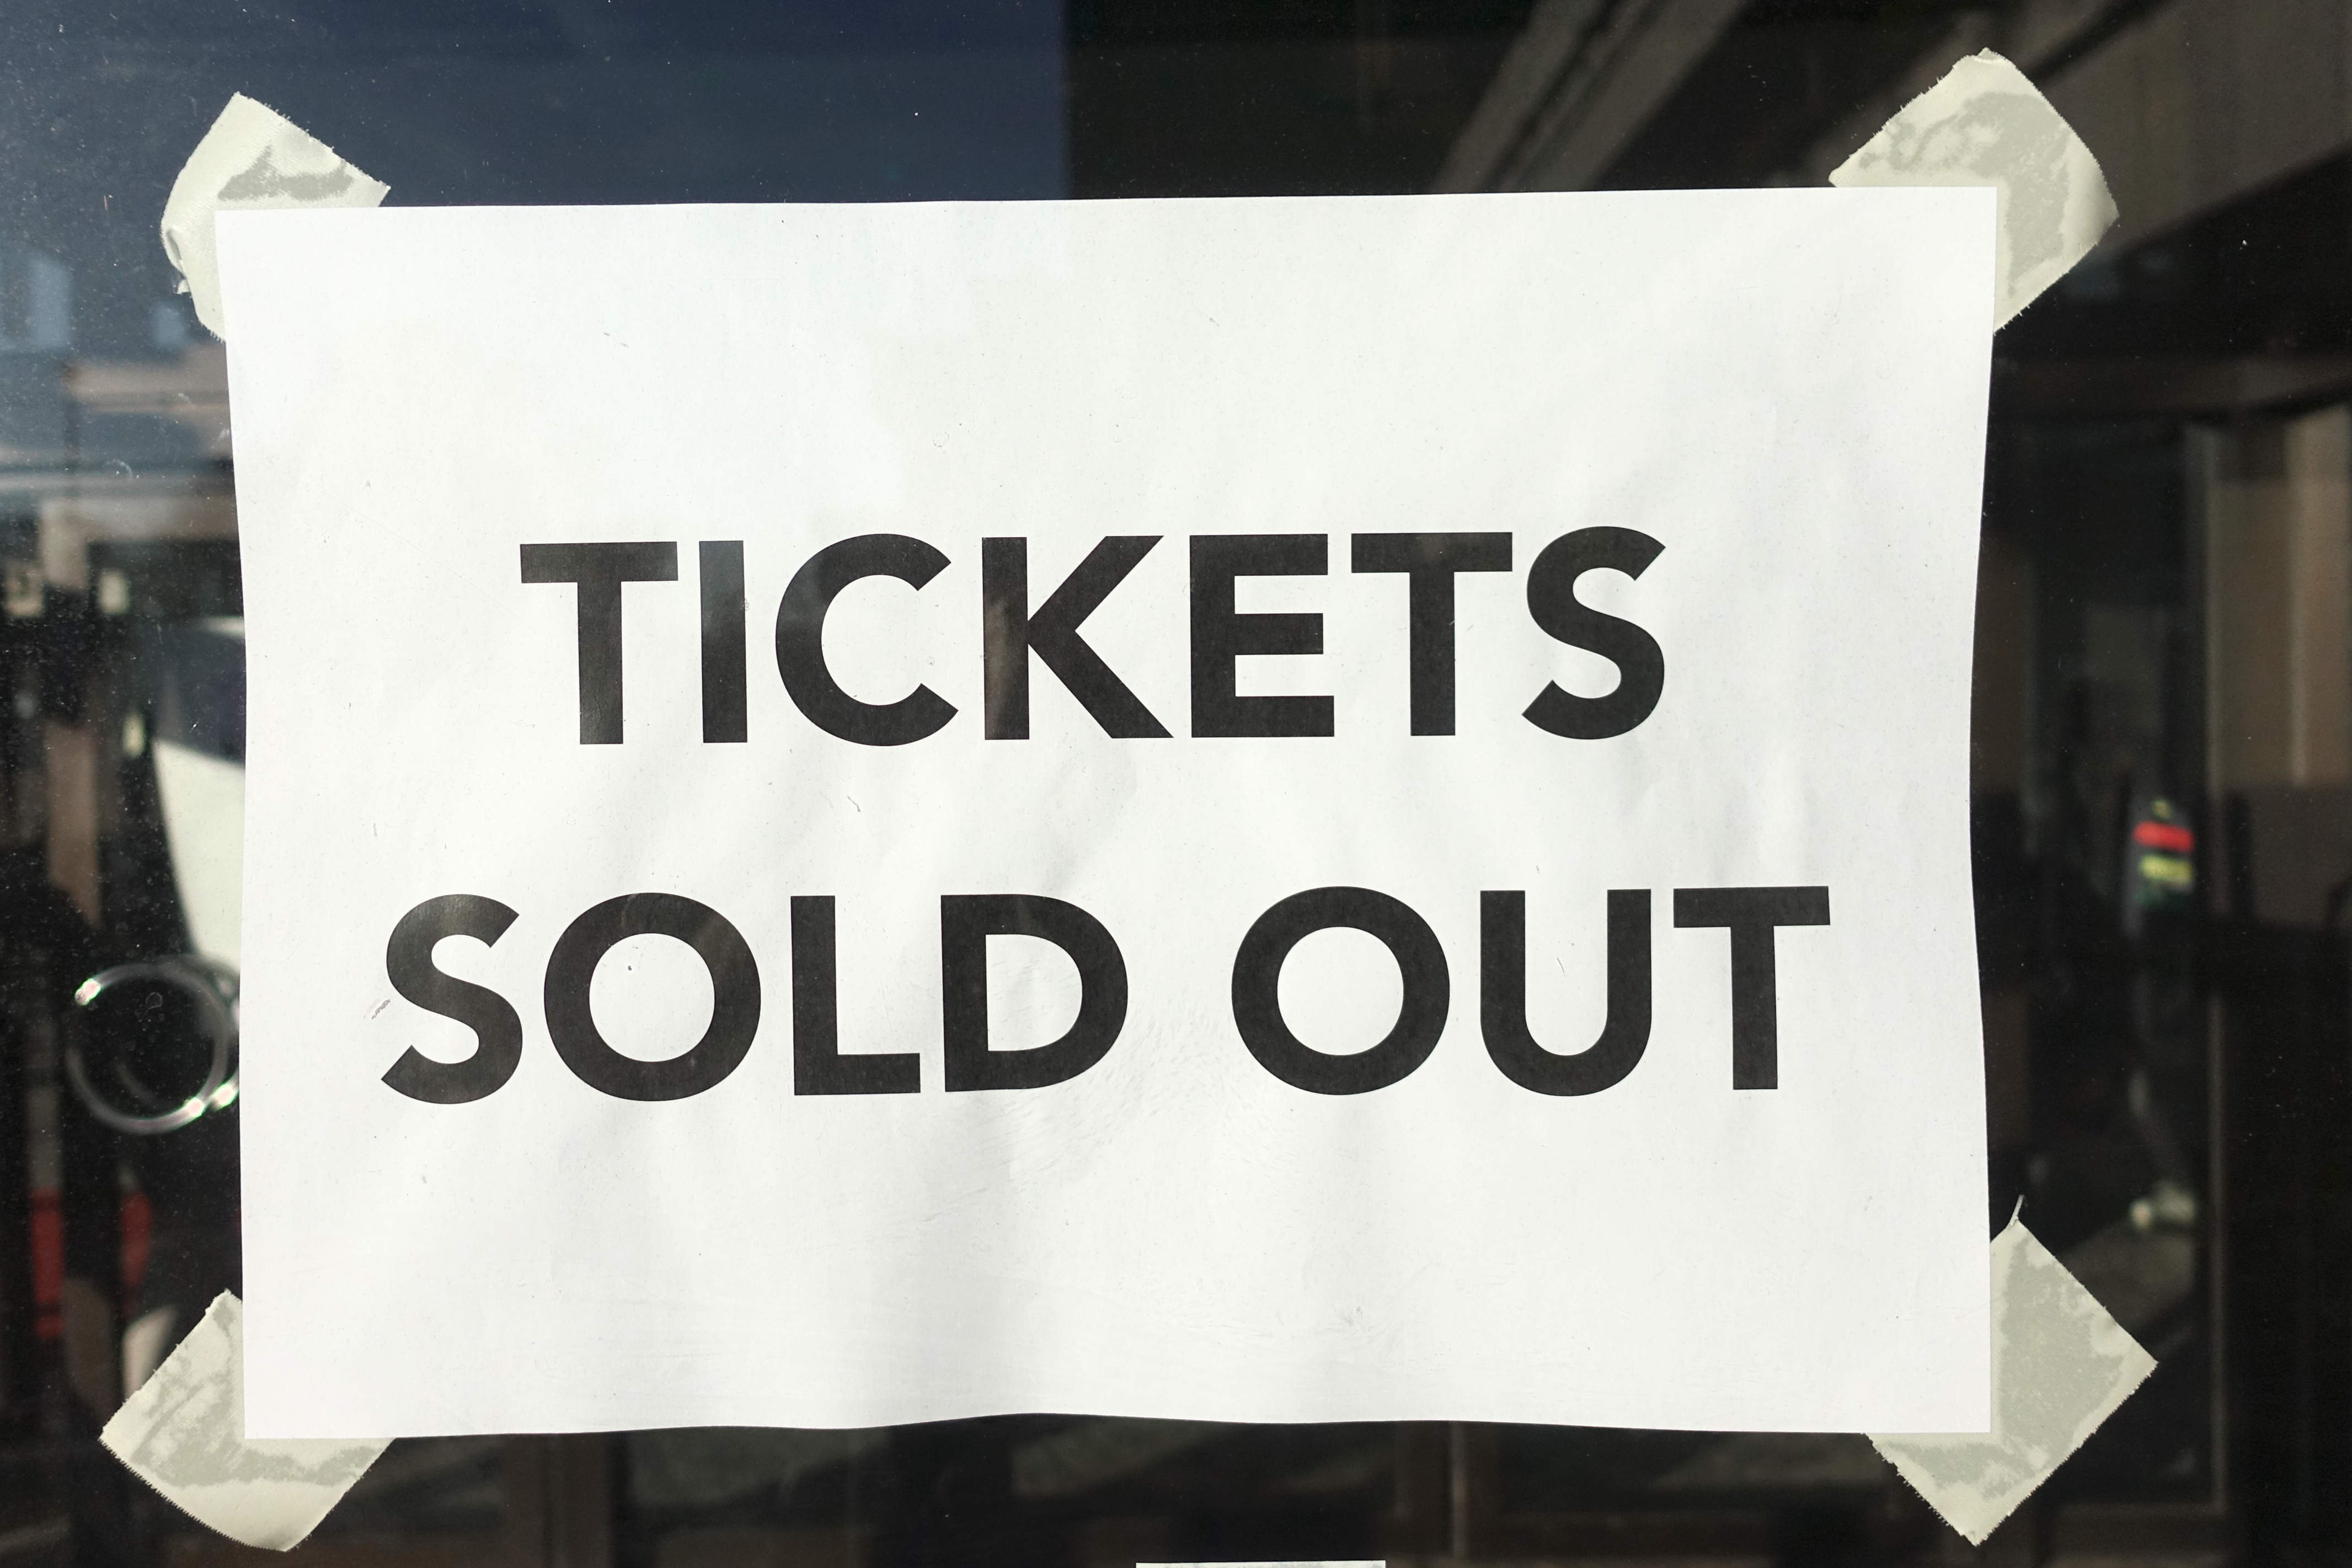 33C3: Tickets sold out (1st. Message)